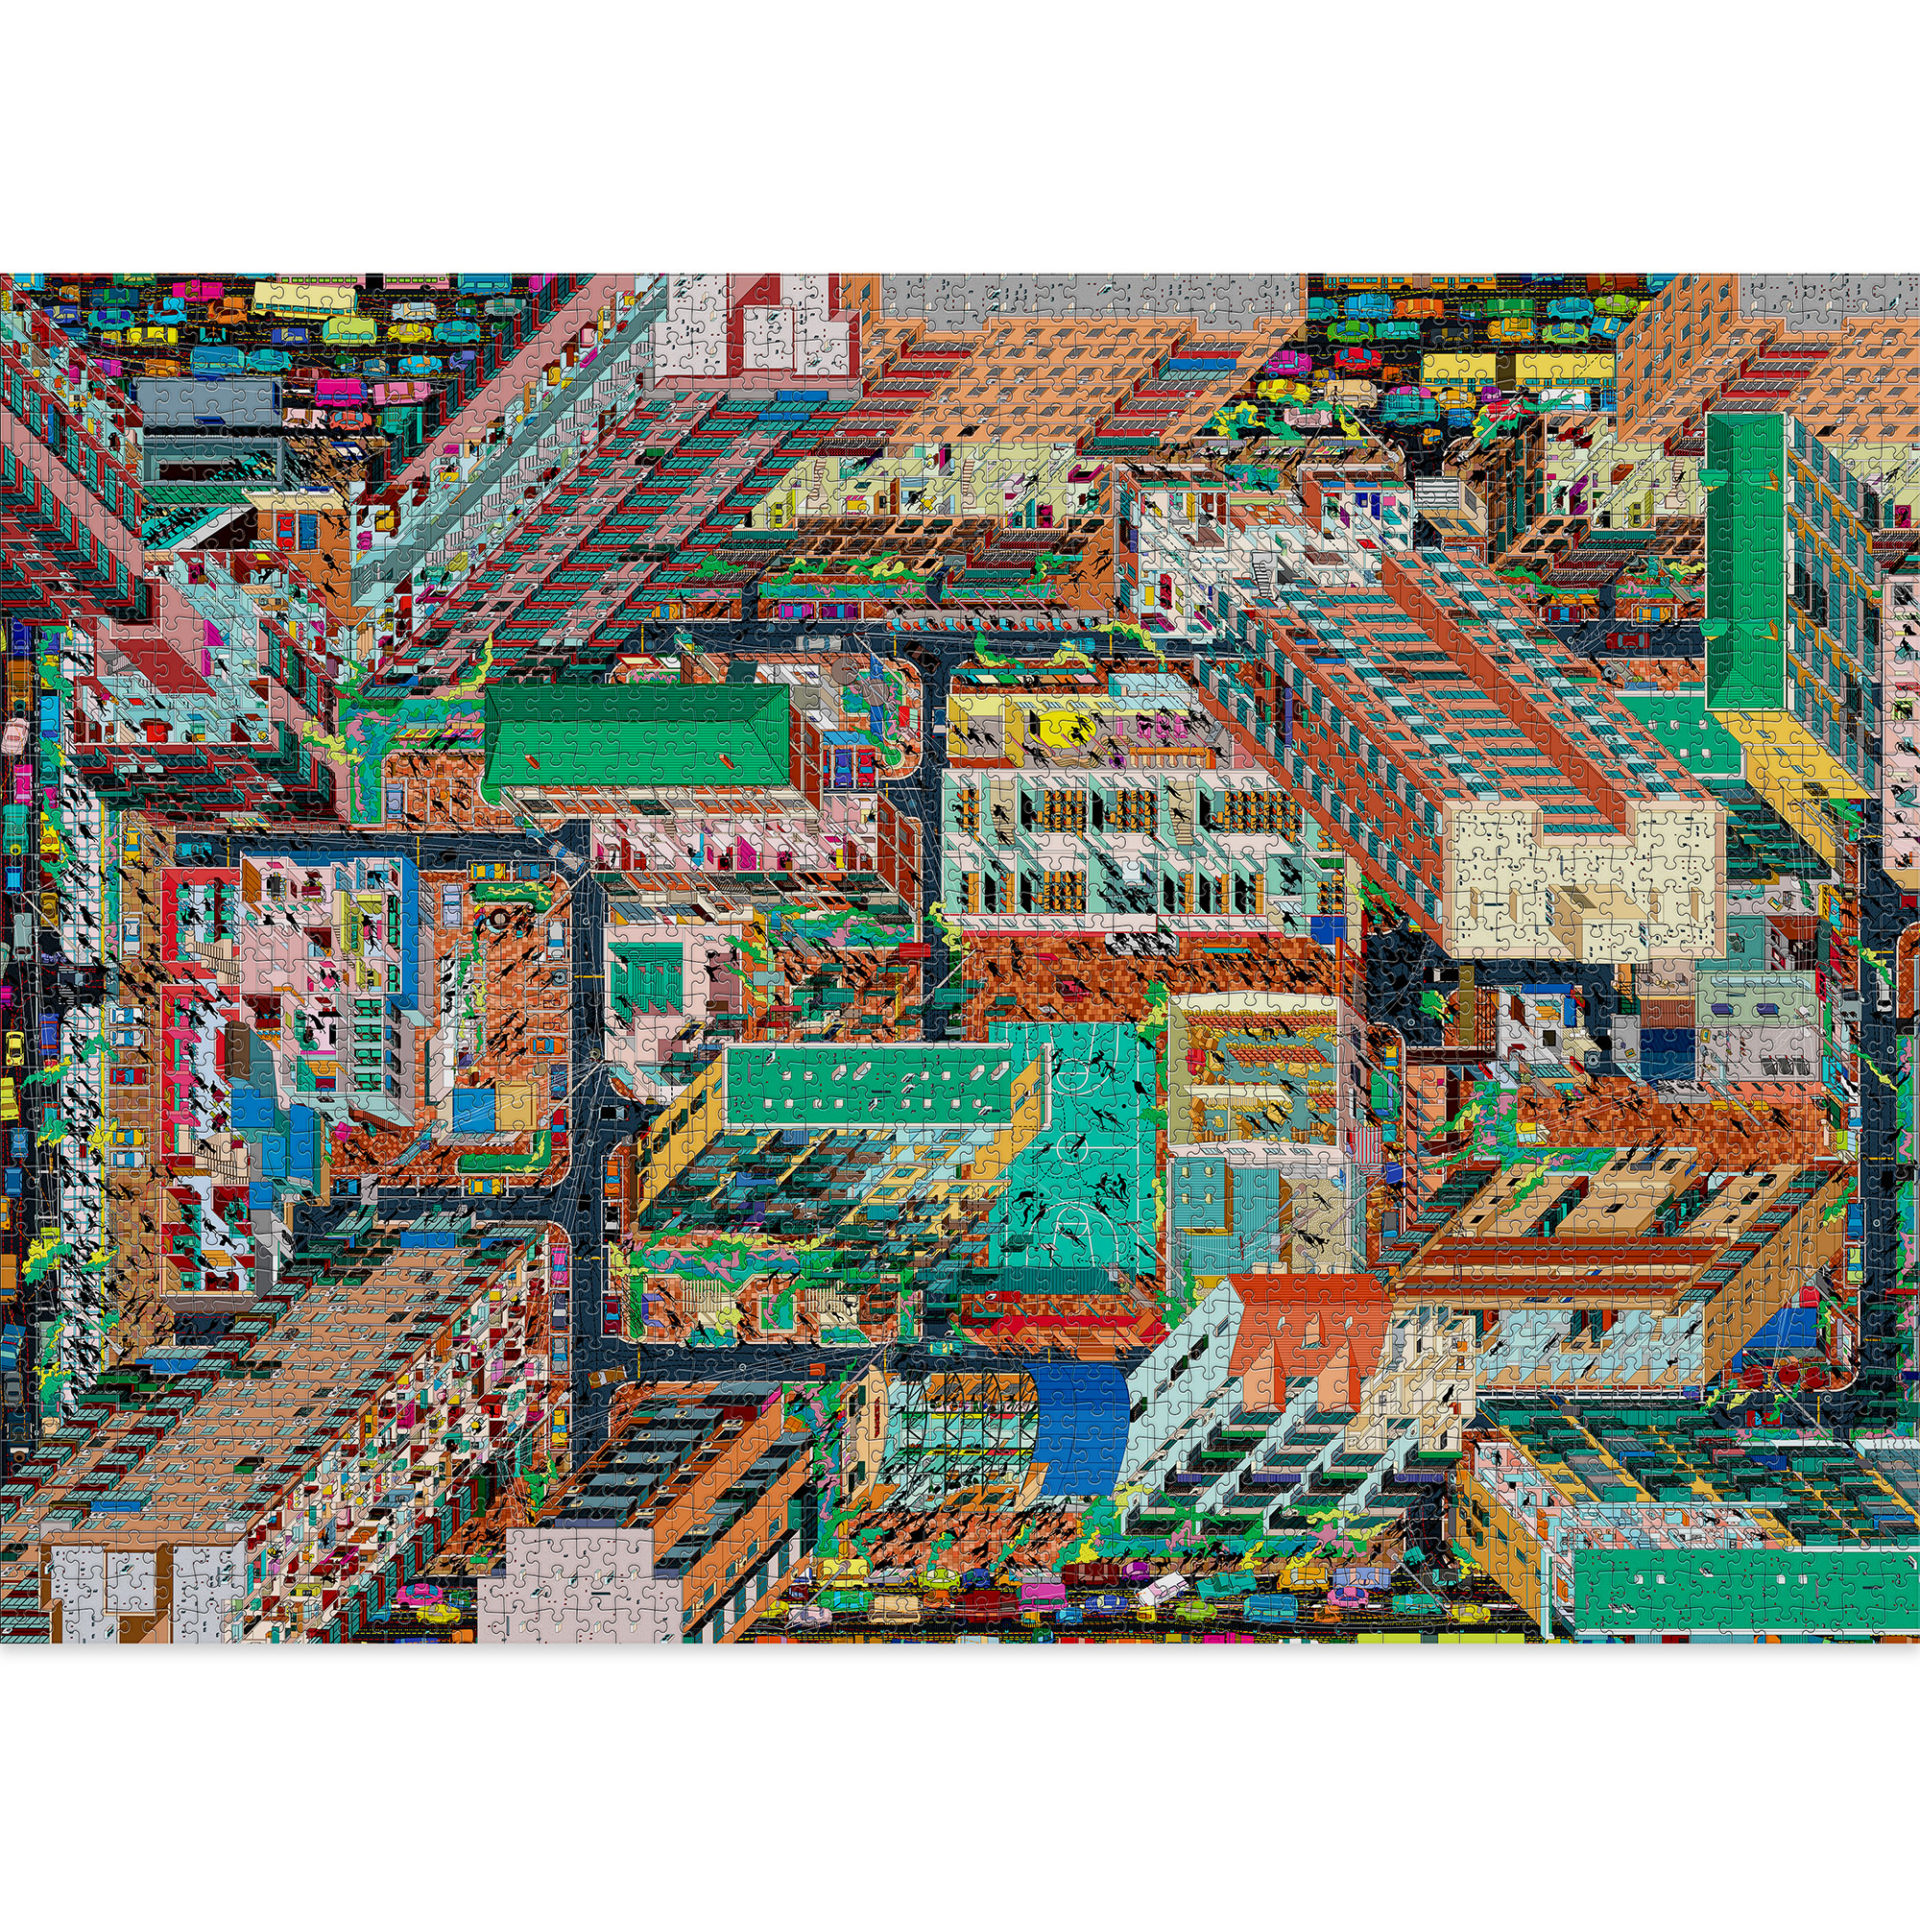 Metropolis is one of the most difficult 2000 pieces puzzles by Cloudberries